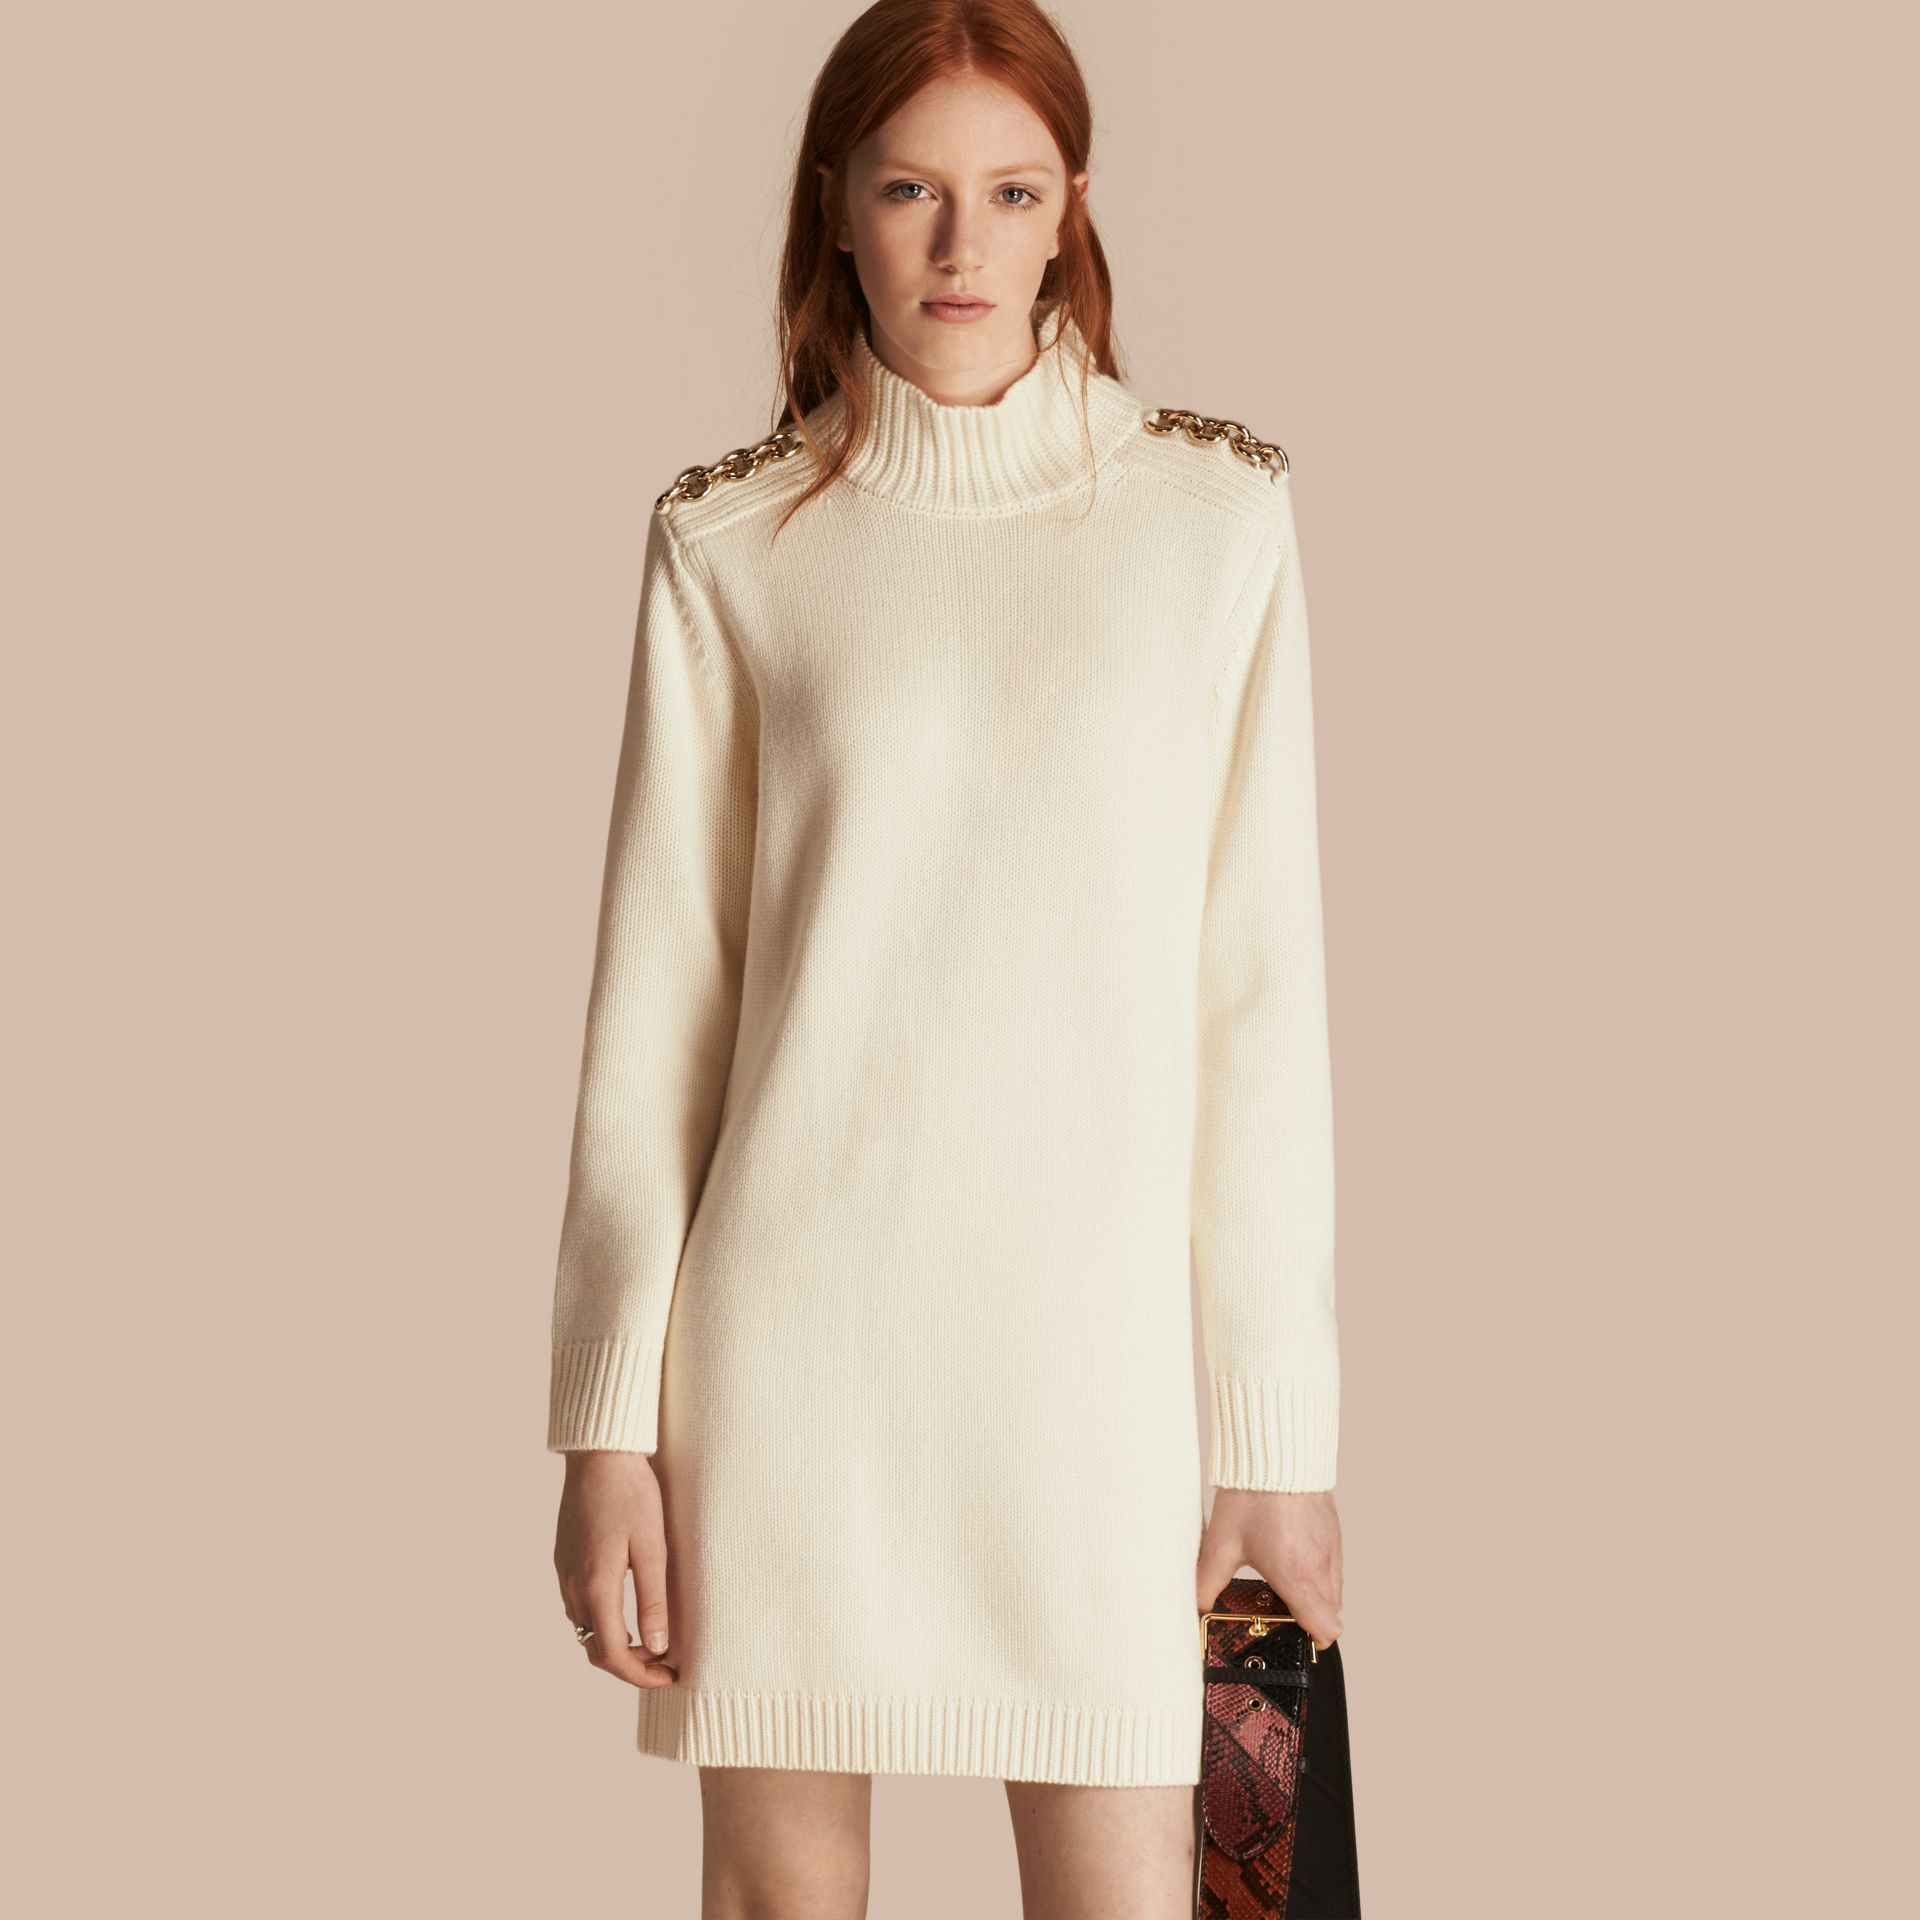 Natural white Chain Detail Wool Cashmere High-neck Dress Natural White - gallery image 1